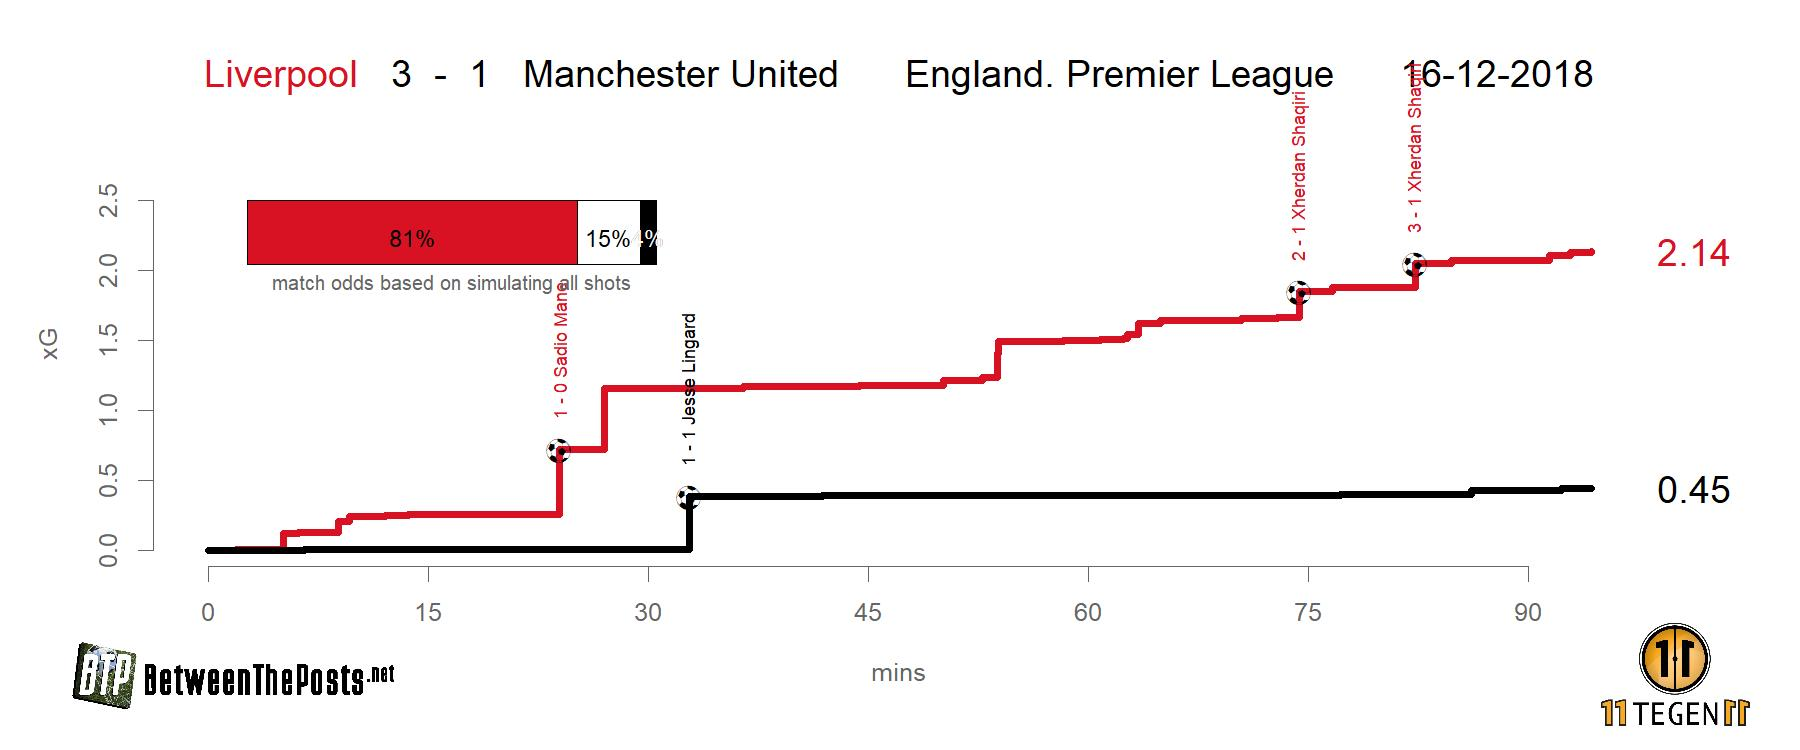 Expected goals plot Liverpool Manchester United 3-1 Premier League